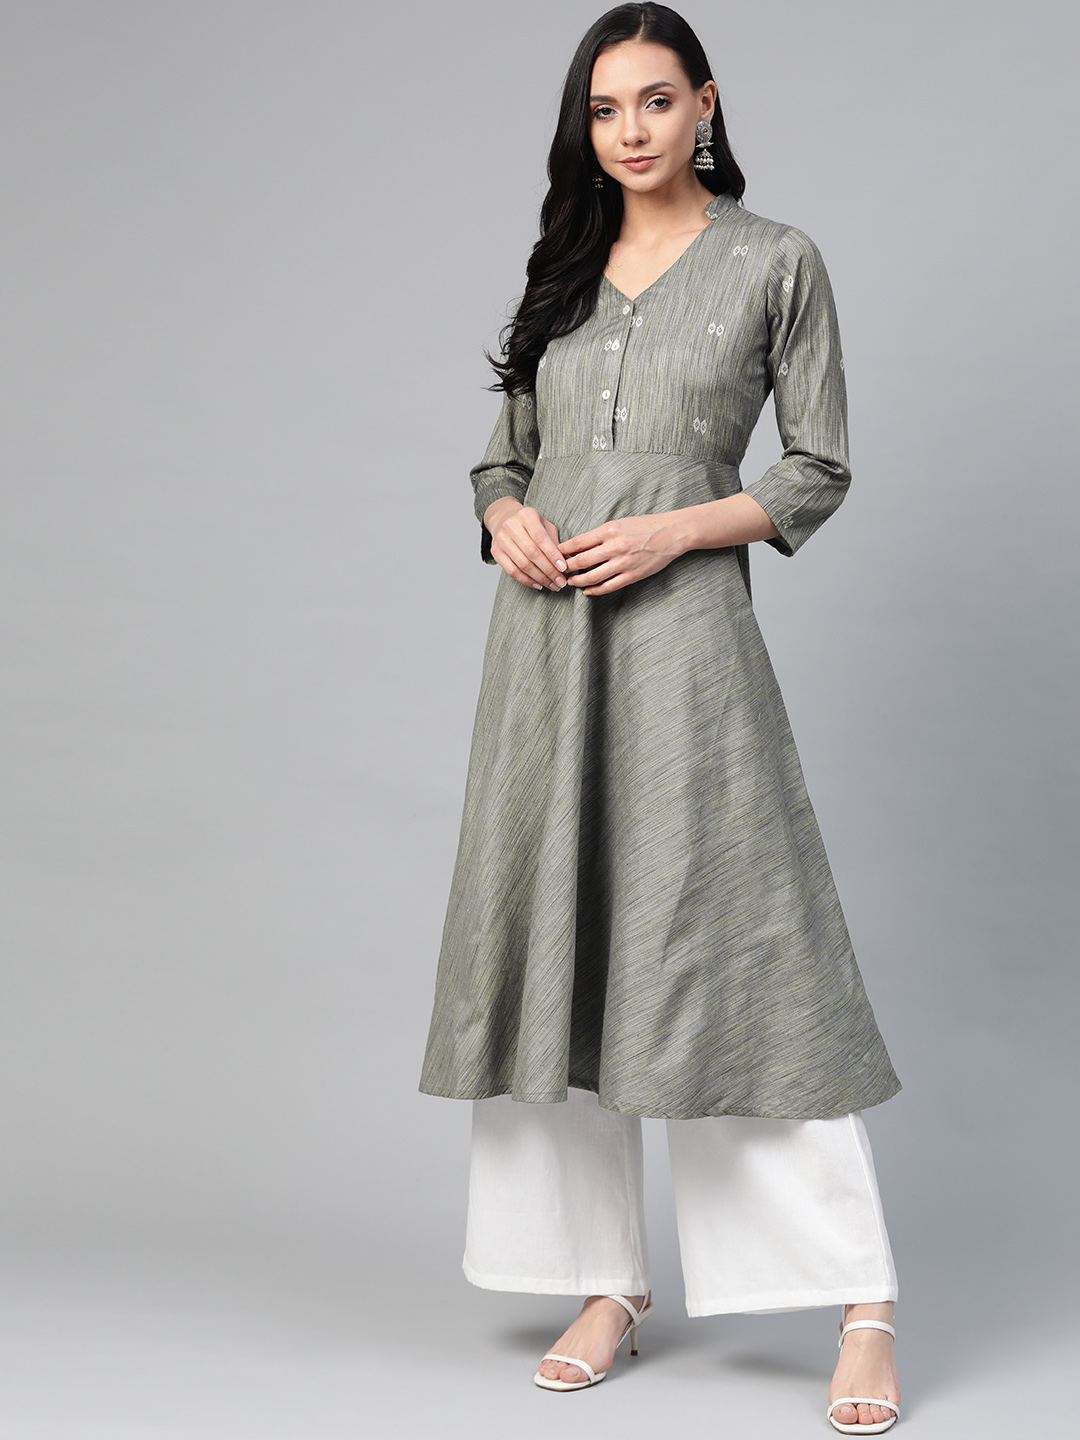 Jompers | Jompers woven design flaired kurta